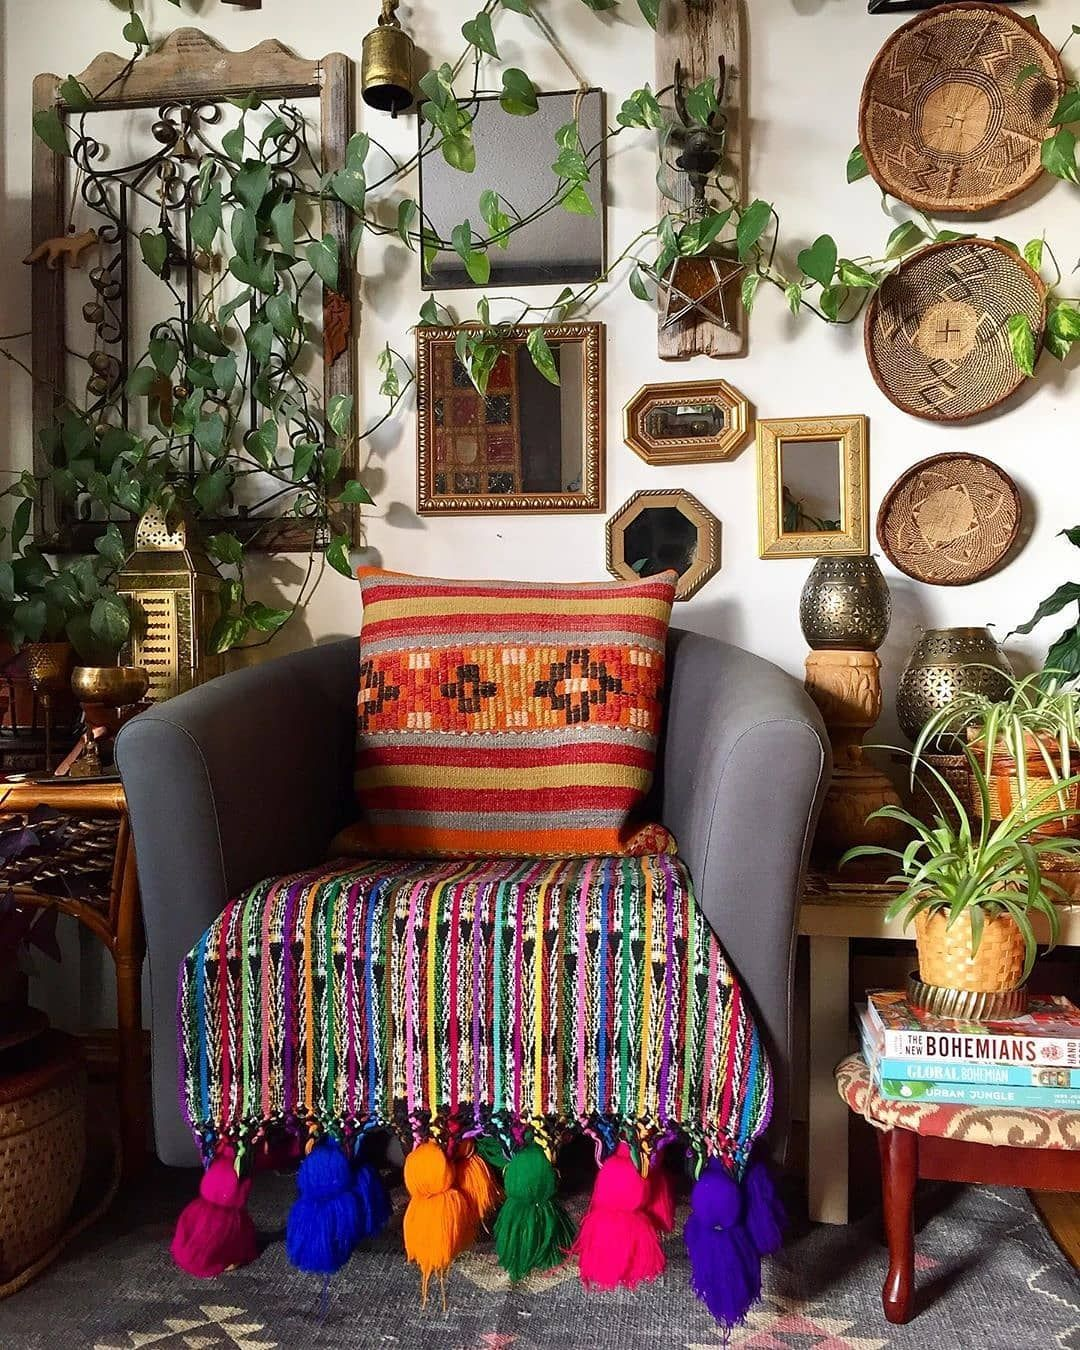 Boho Fashion History And Bohemian Style Boho Style Furniture Bohemian Style Decor Home Decor